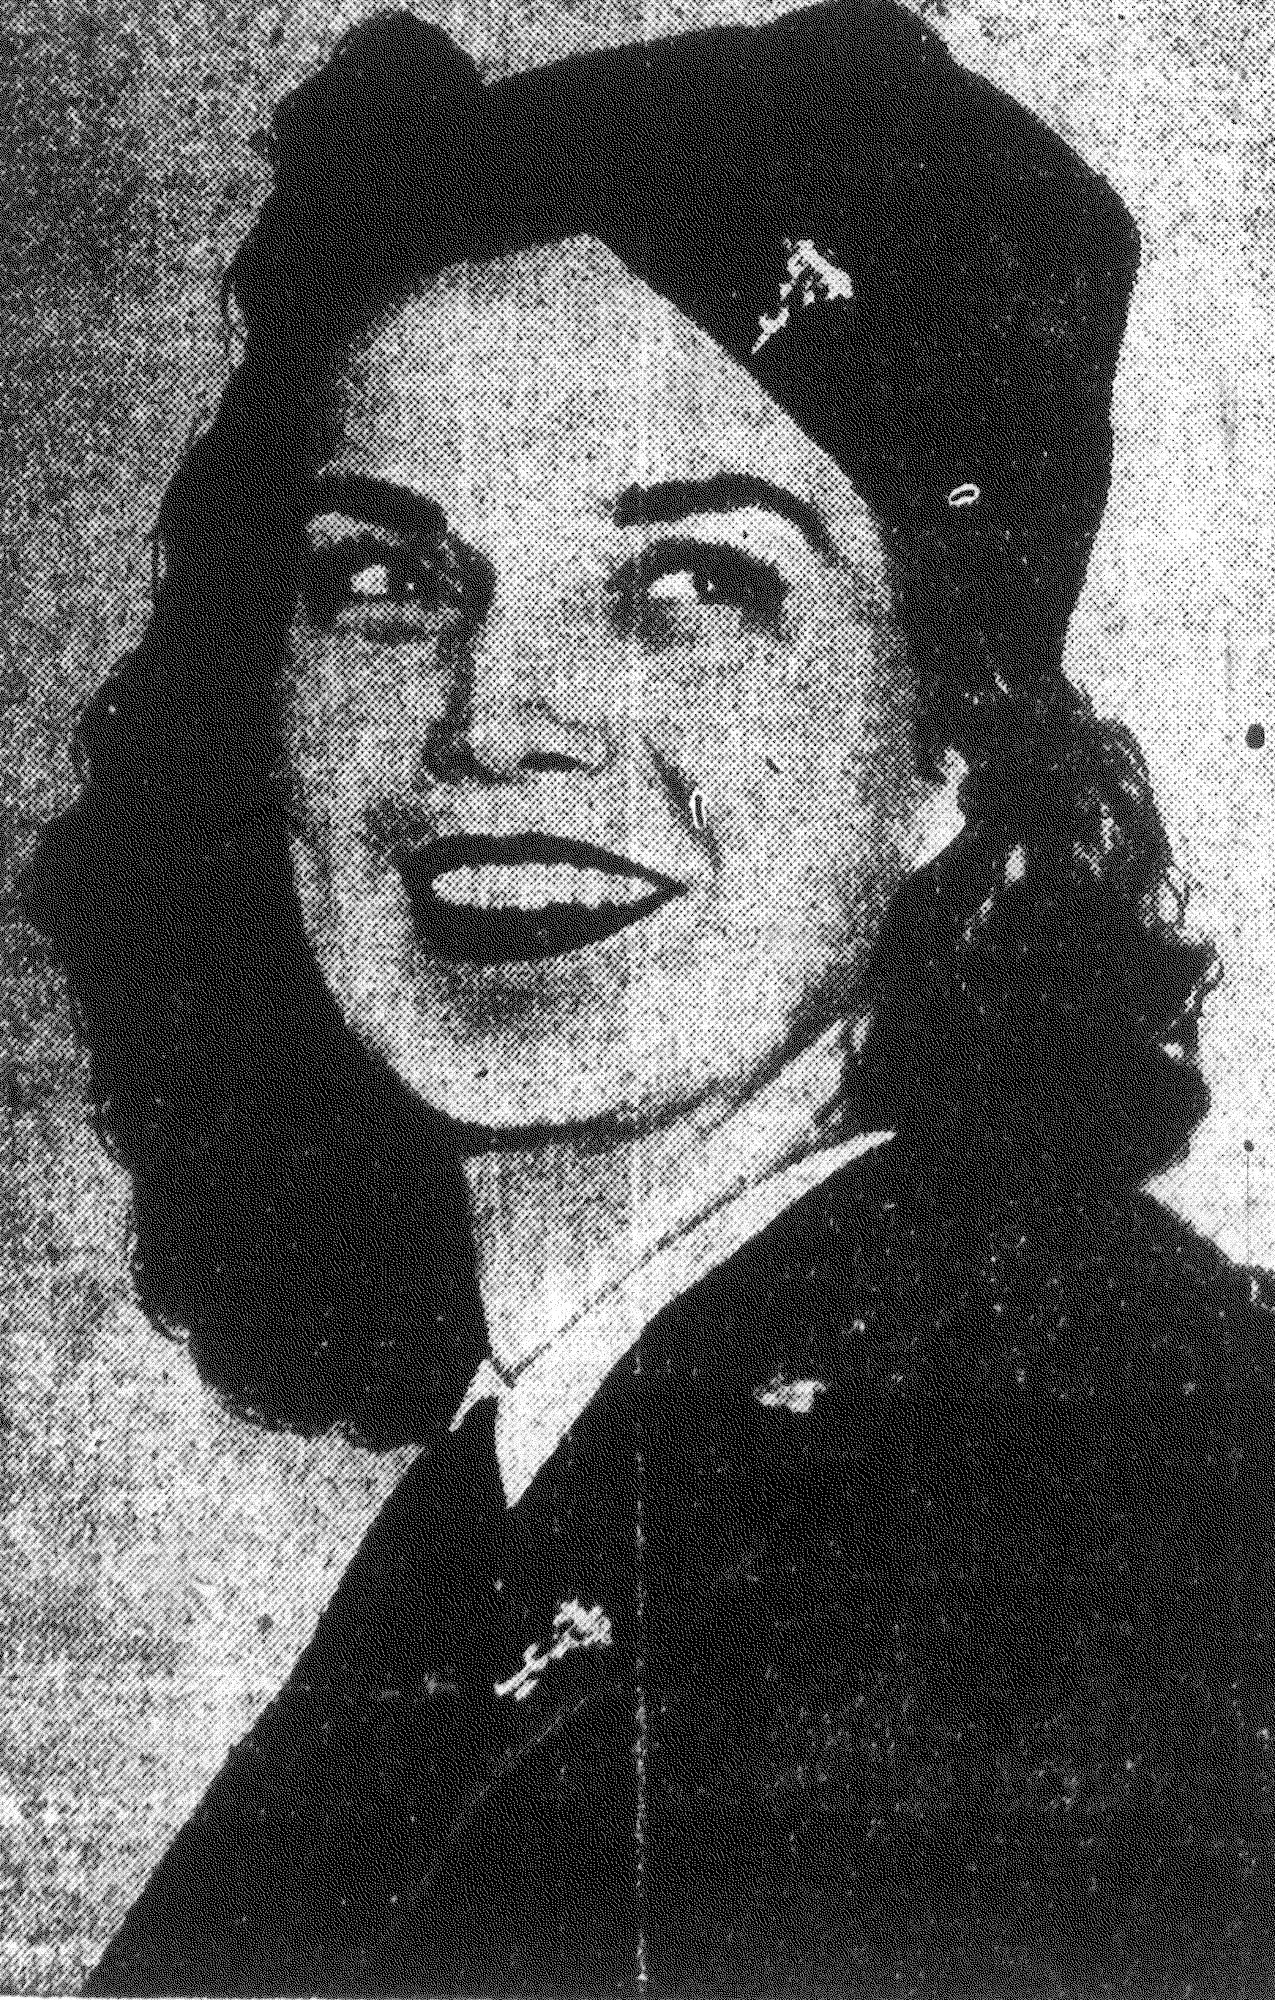 Nurse Juanita Redmond, decorated for her bravery under fire on bloody Bataan peninsula, is seen before her arrival in Sumter to visit her brother Robert Redmond, manager of Edens Super-Market. During her time in Sumter, Lt. Redmond visited Shaw Field and assisted in the sale of war bonds and stamps at her brother's store.